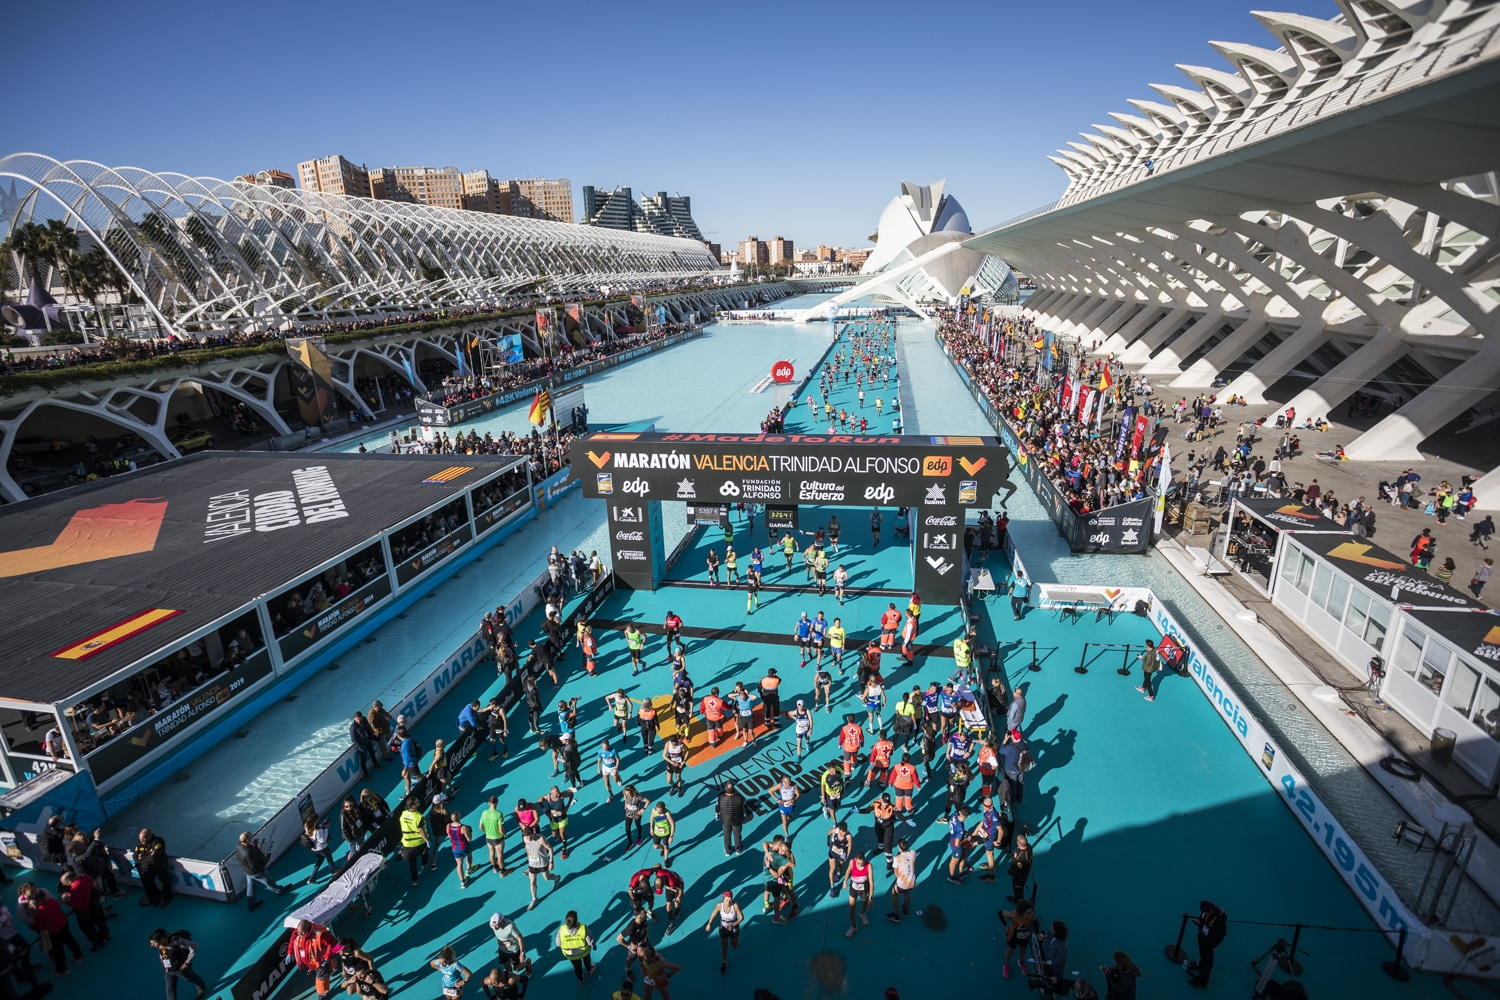 The Valencia Marathon Finish